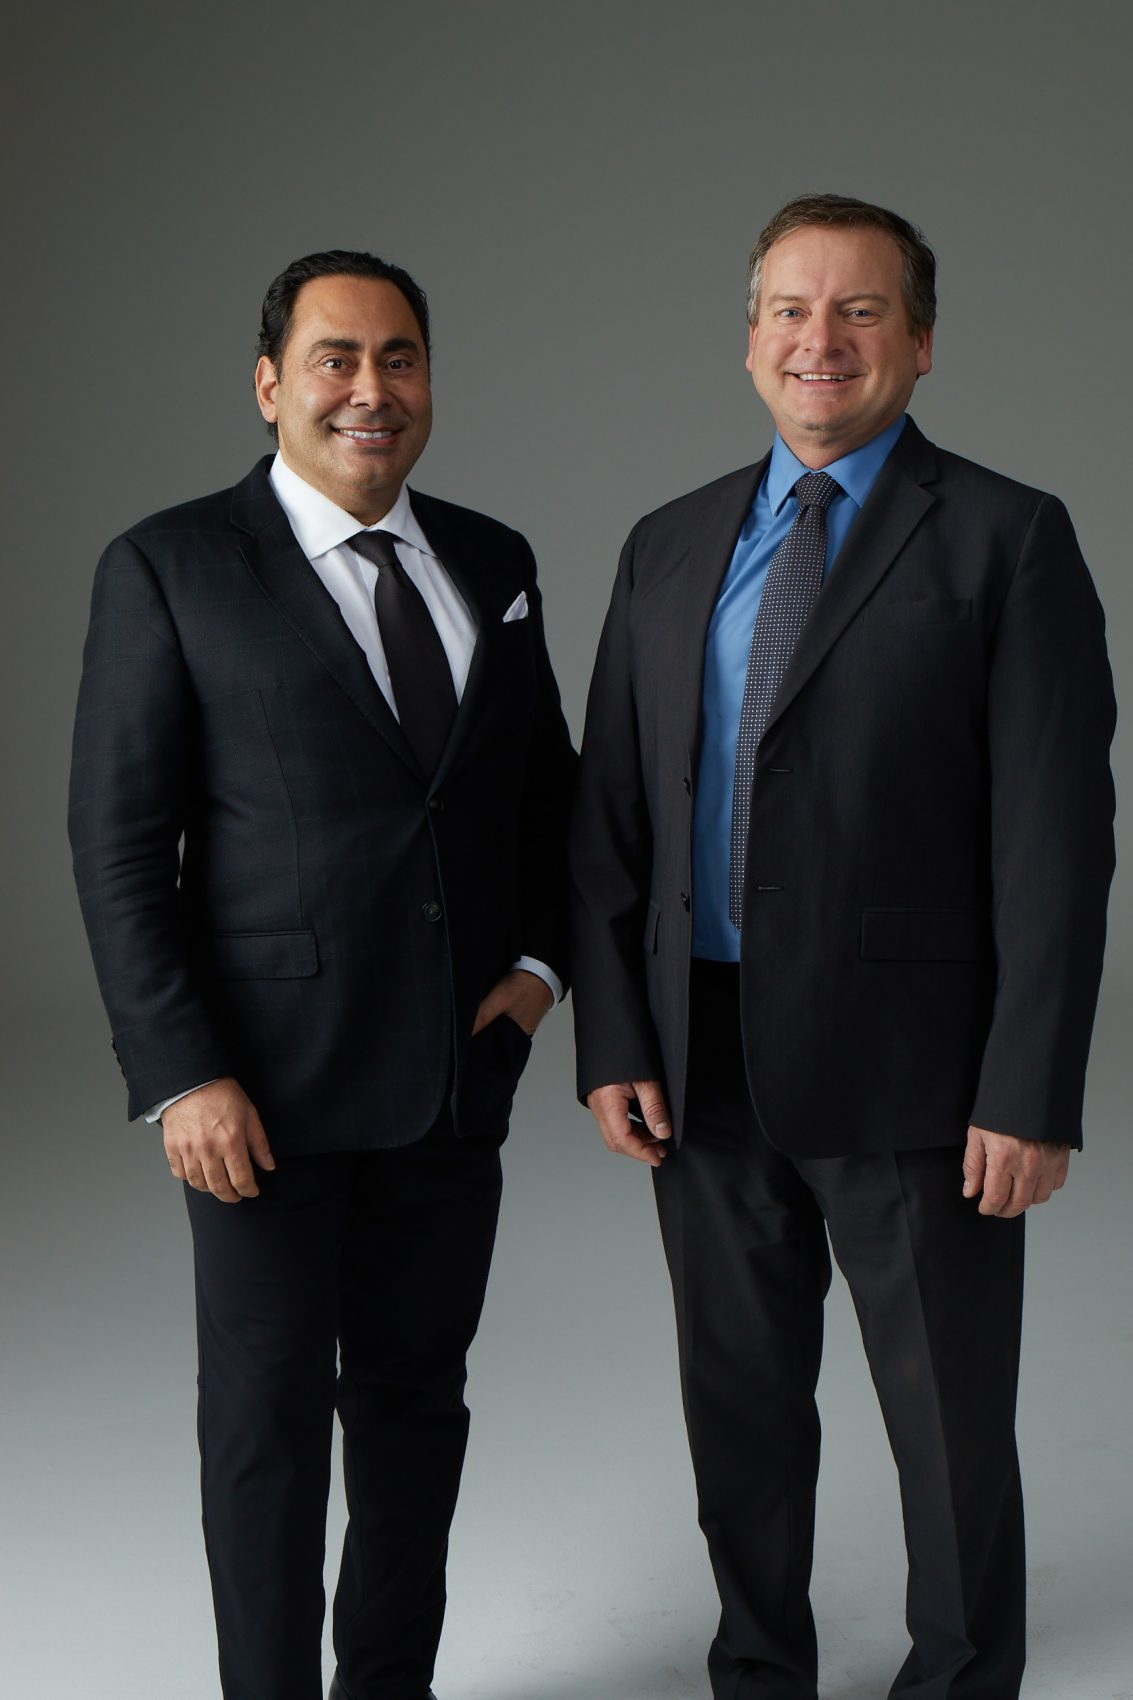 Dr. Daniel Yamini and Dr. Steven Svehlak, Los Angeles Top Surgeons